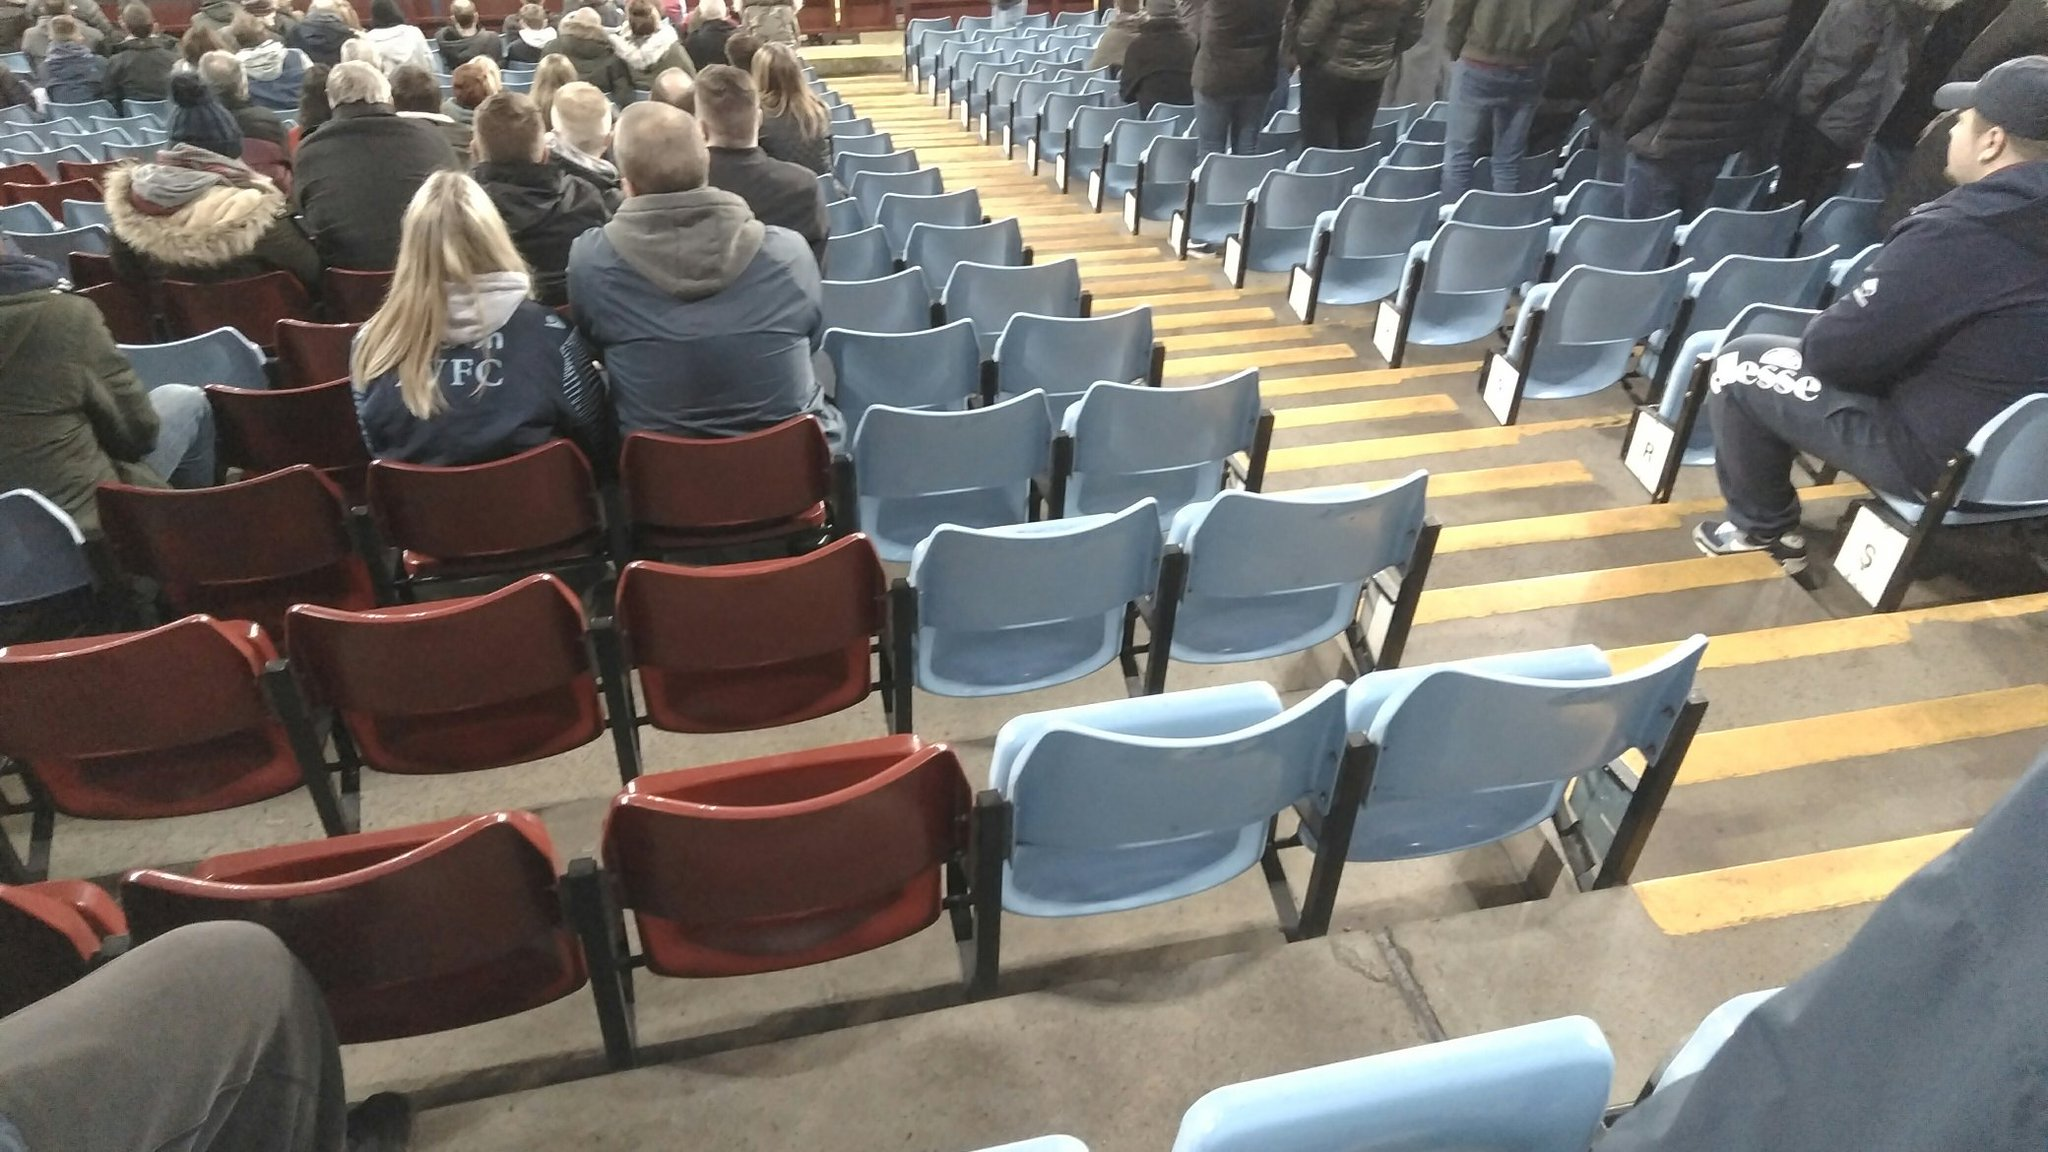 Empty seats Villa park